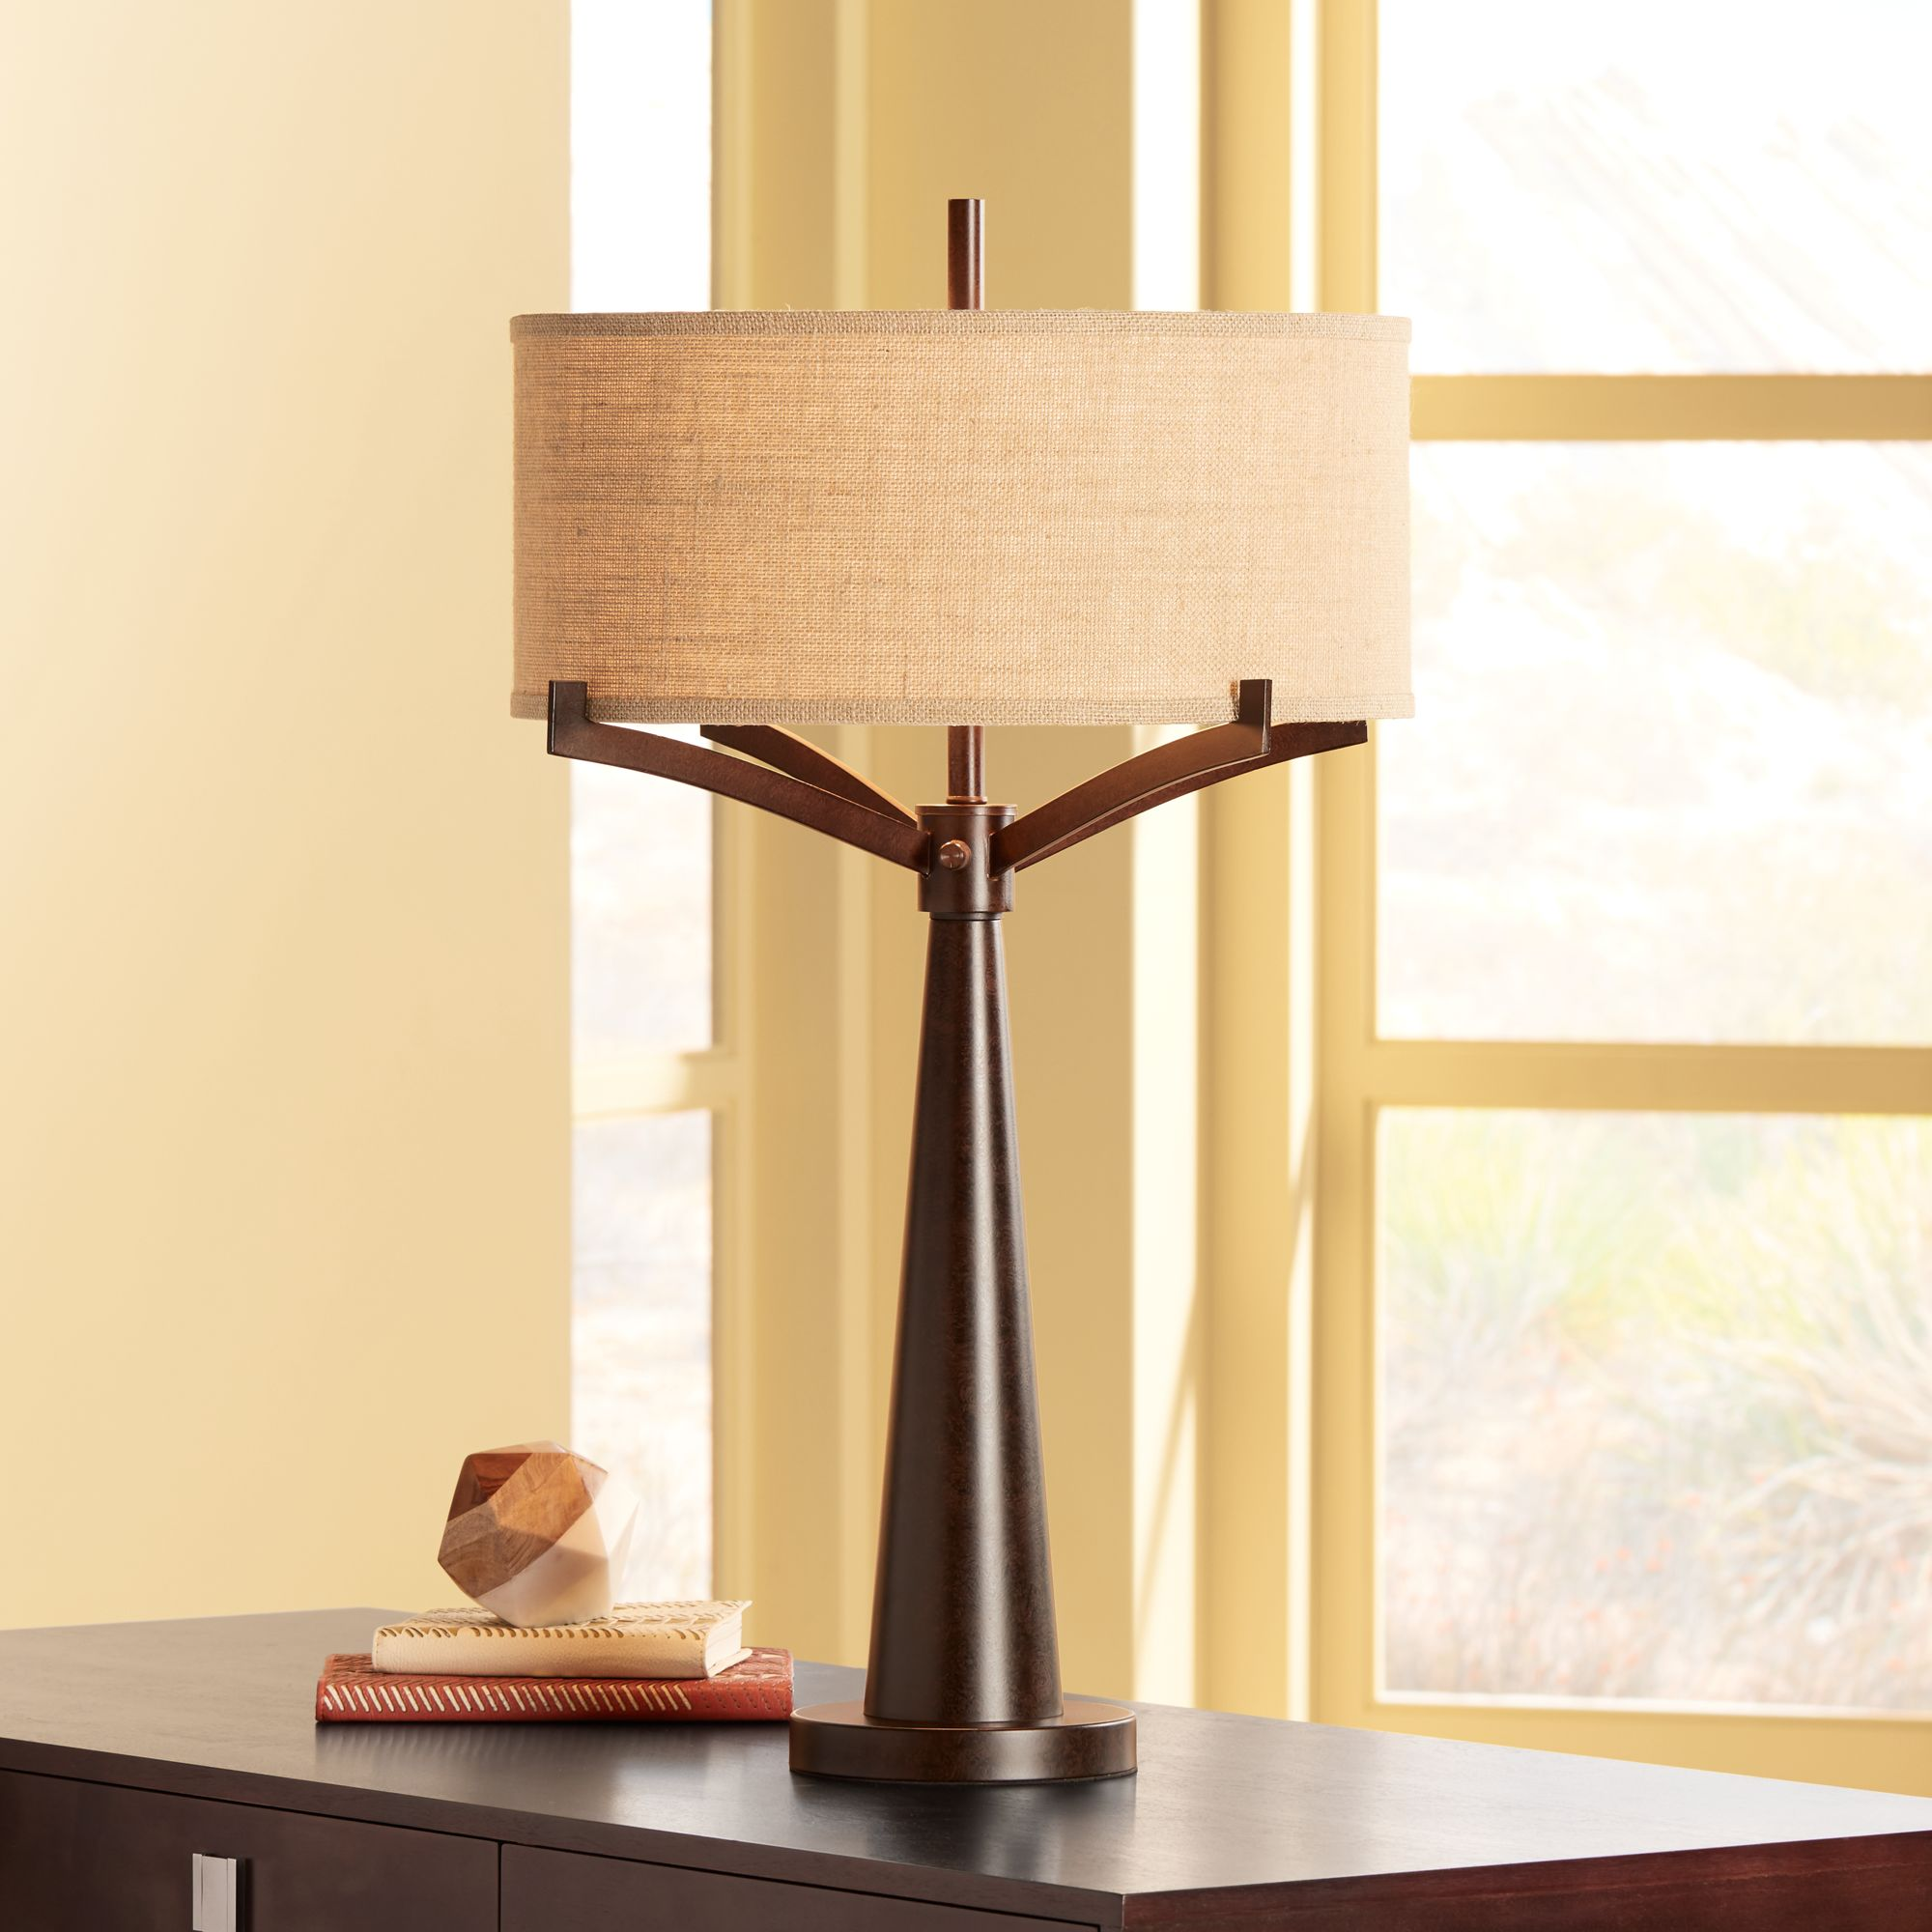 Franklin Iron Works Tremont Bronze Iron Table Lamp by Franklin Iron Works